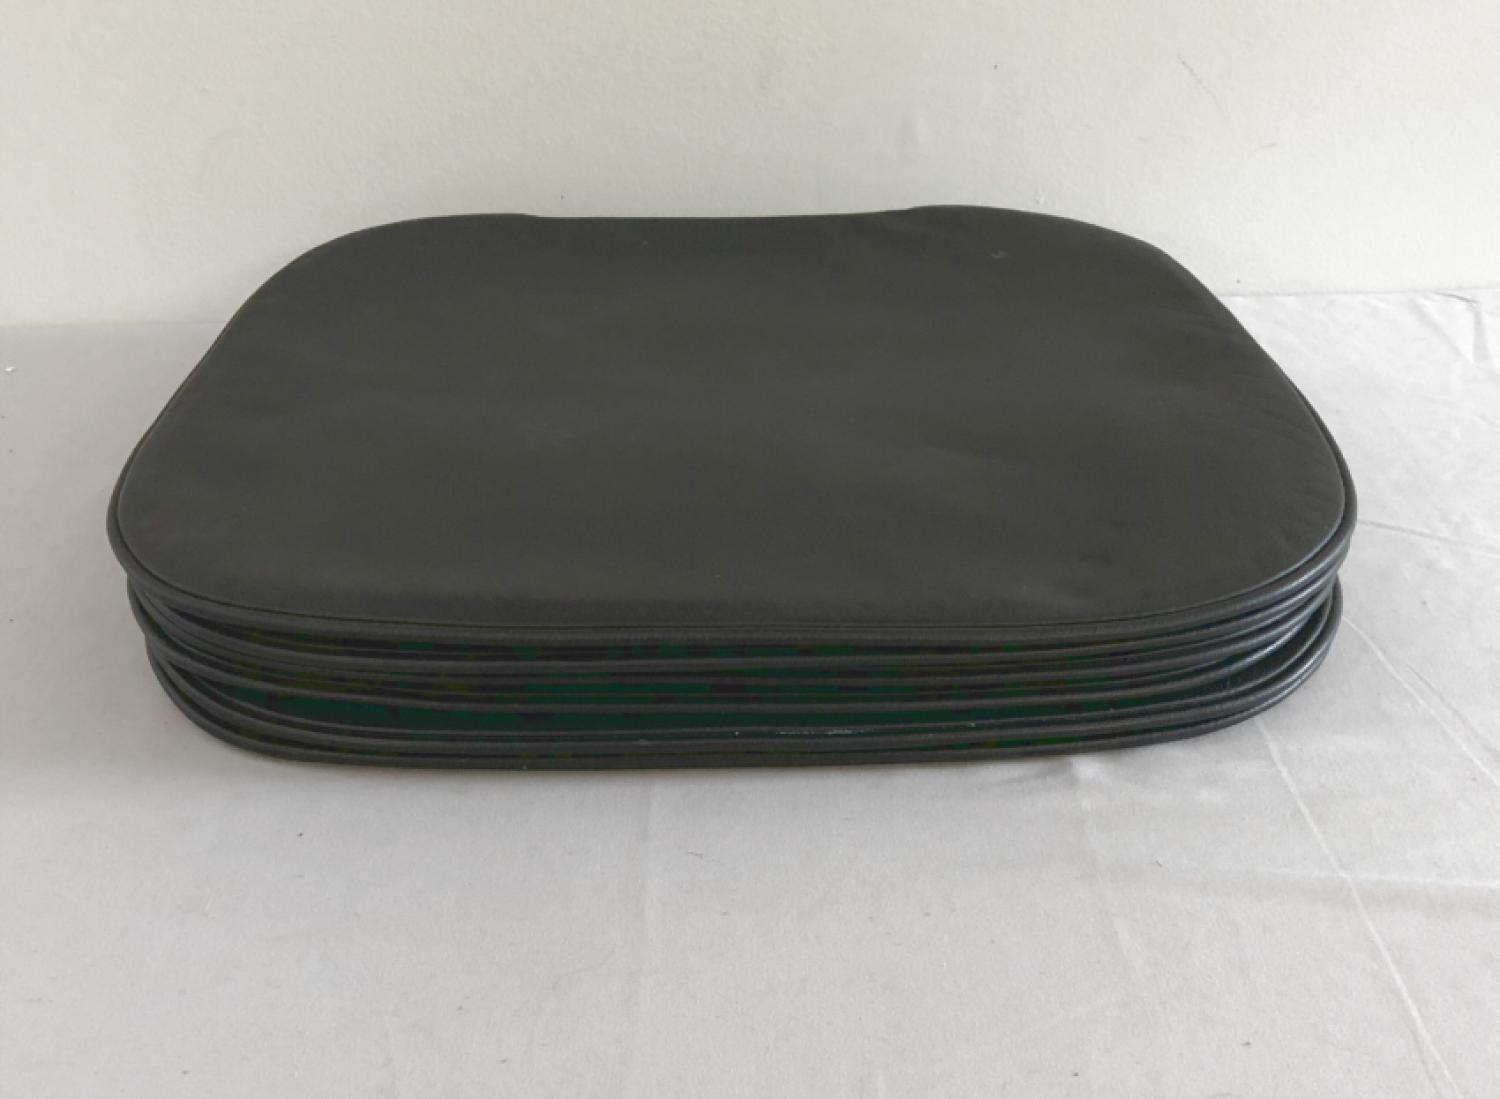 Black leather seat cushions for Hans Wegner Wishbone chairs